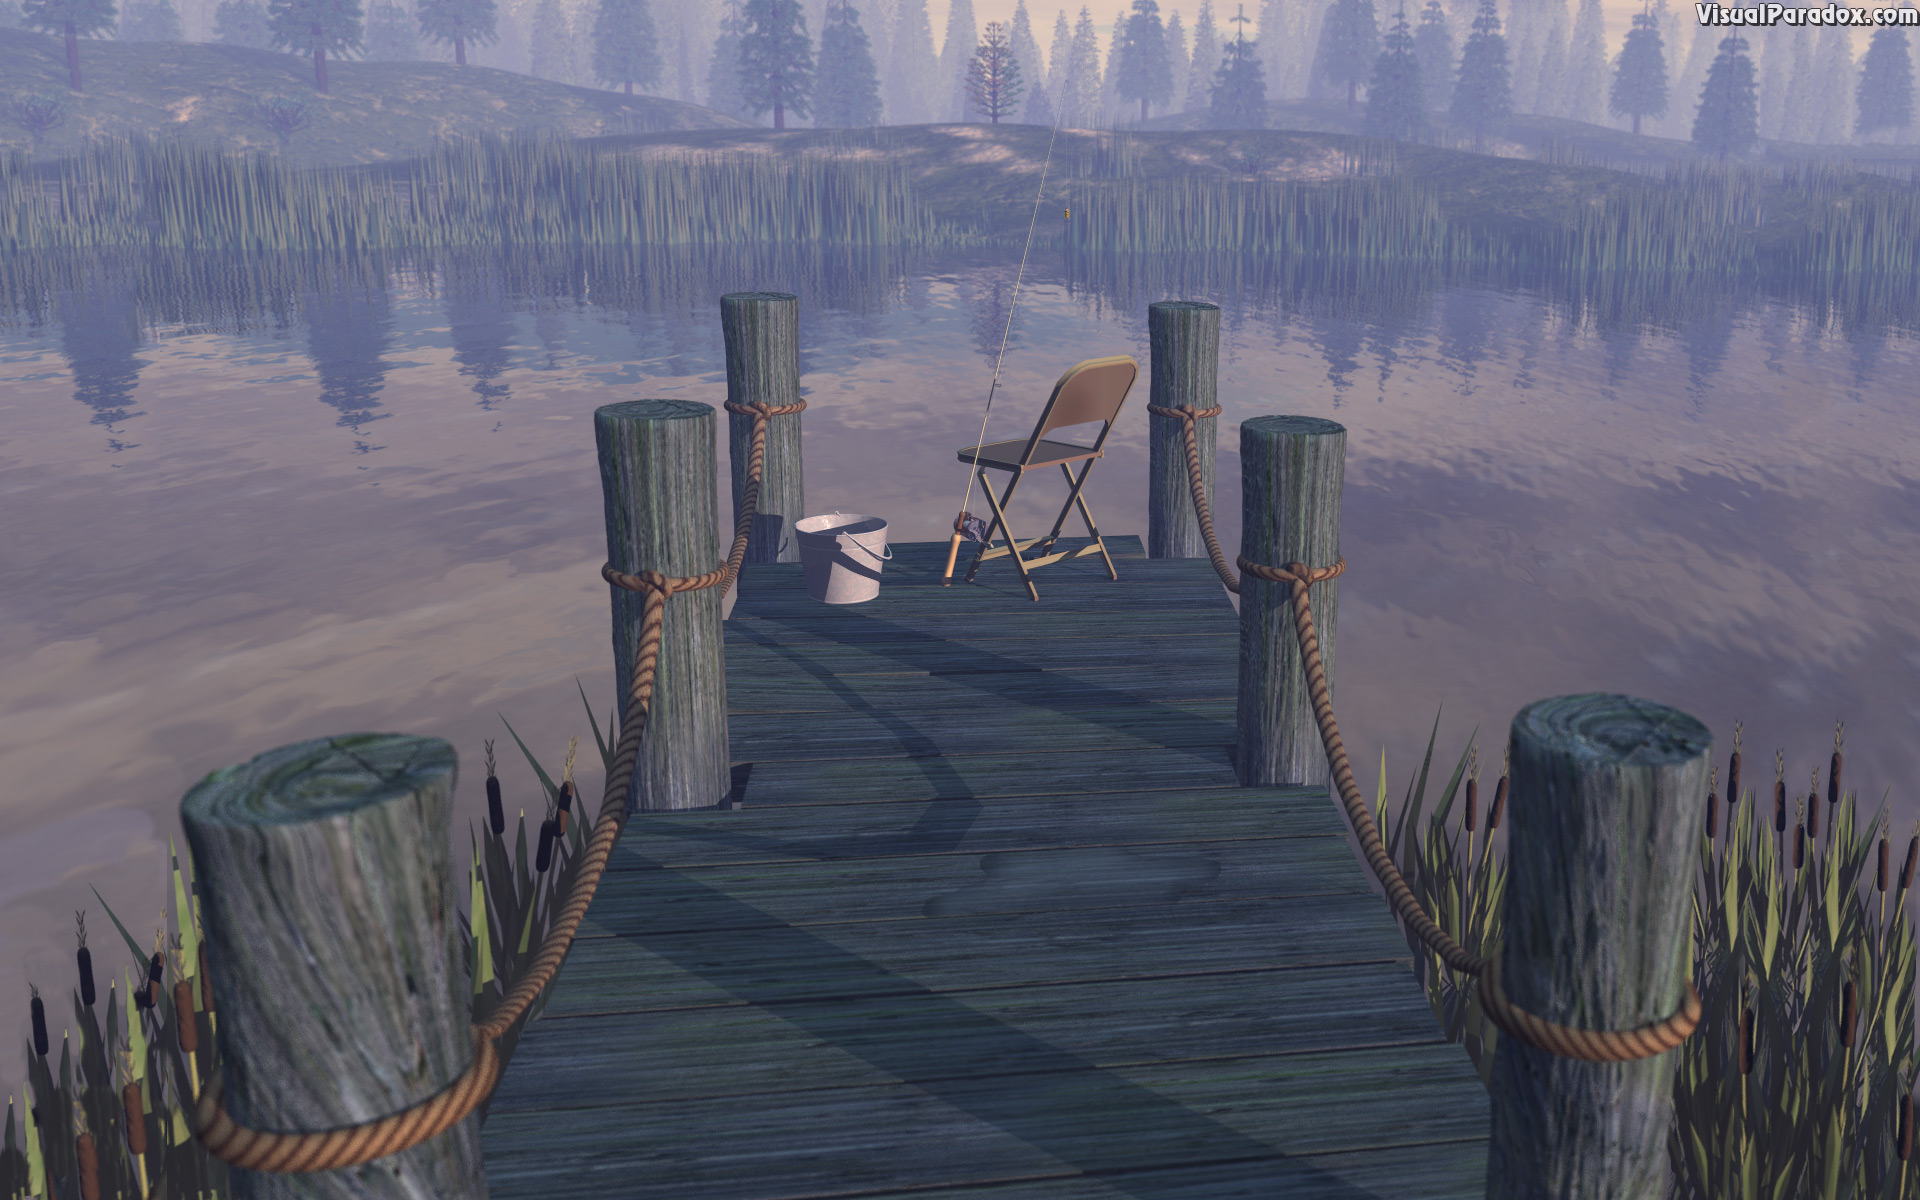 working, fishin, pier, dock, pole, rod, lake, forest, fish, pond, fishing, hole, bass, catfish, stream, river, workin?, 3d, wallpaper